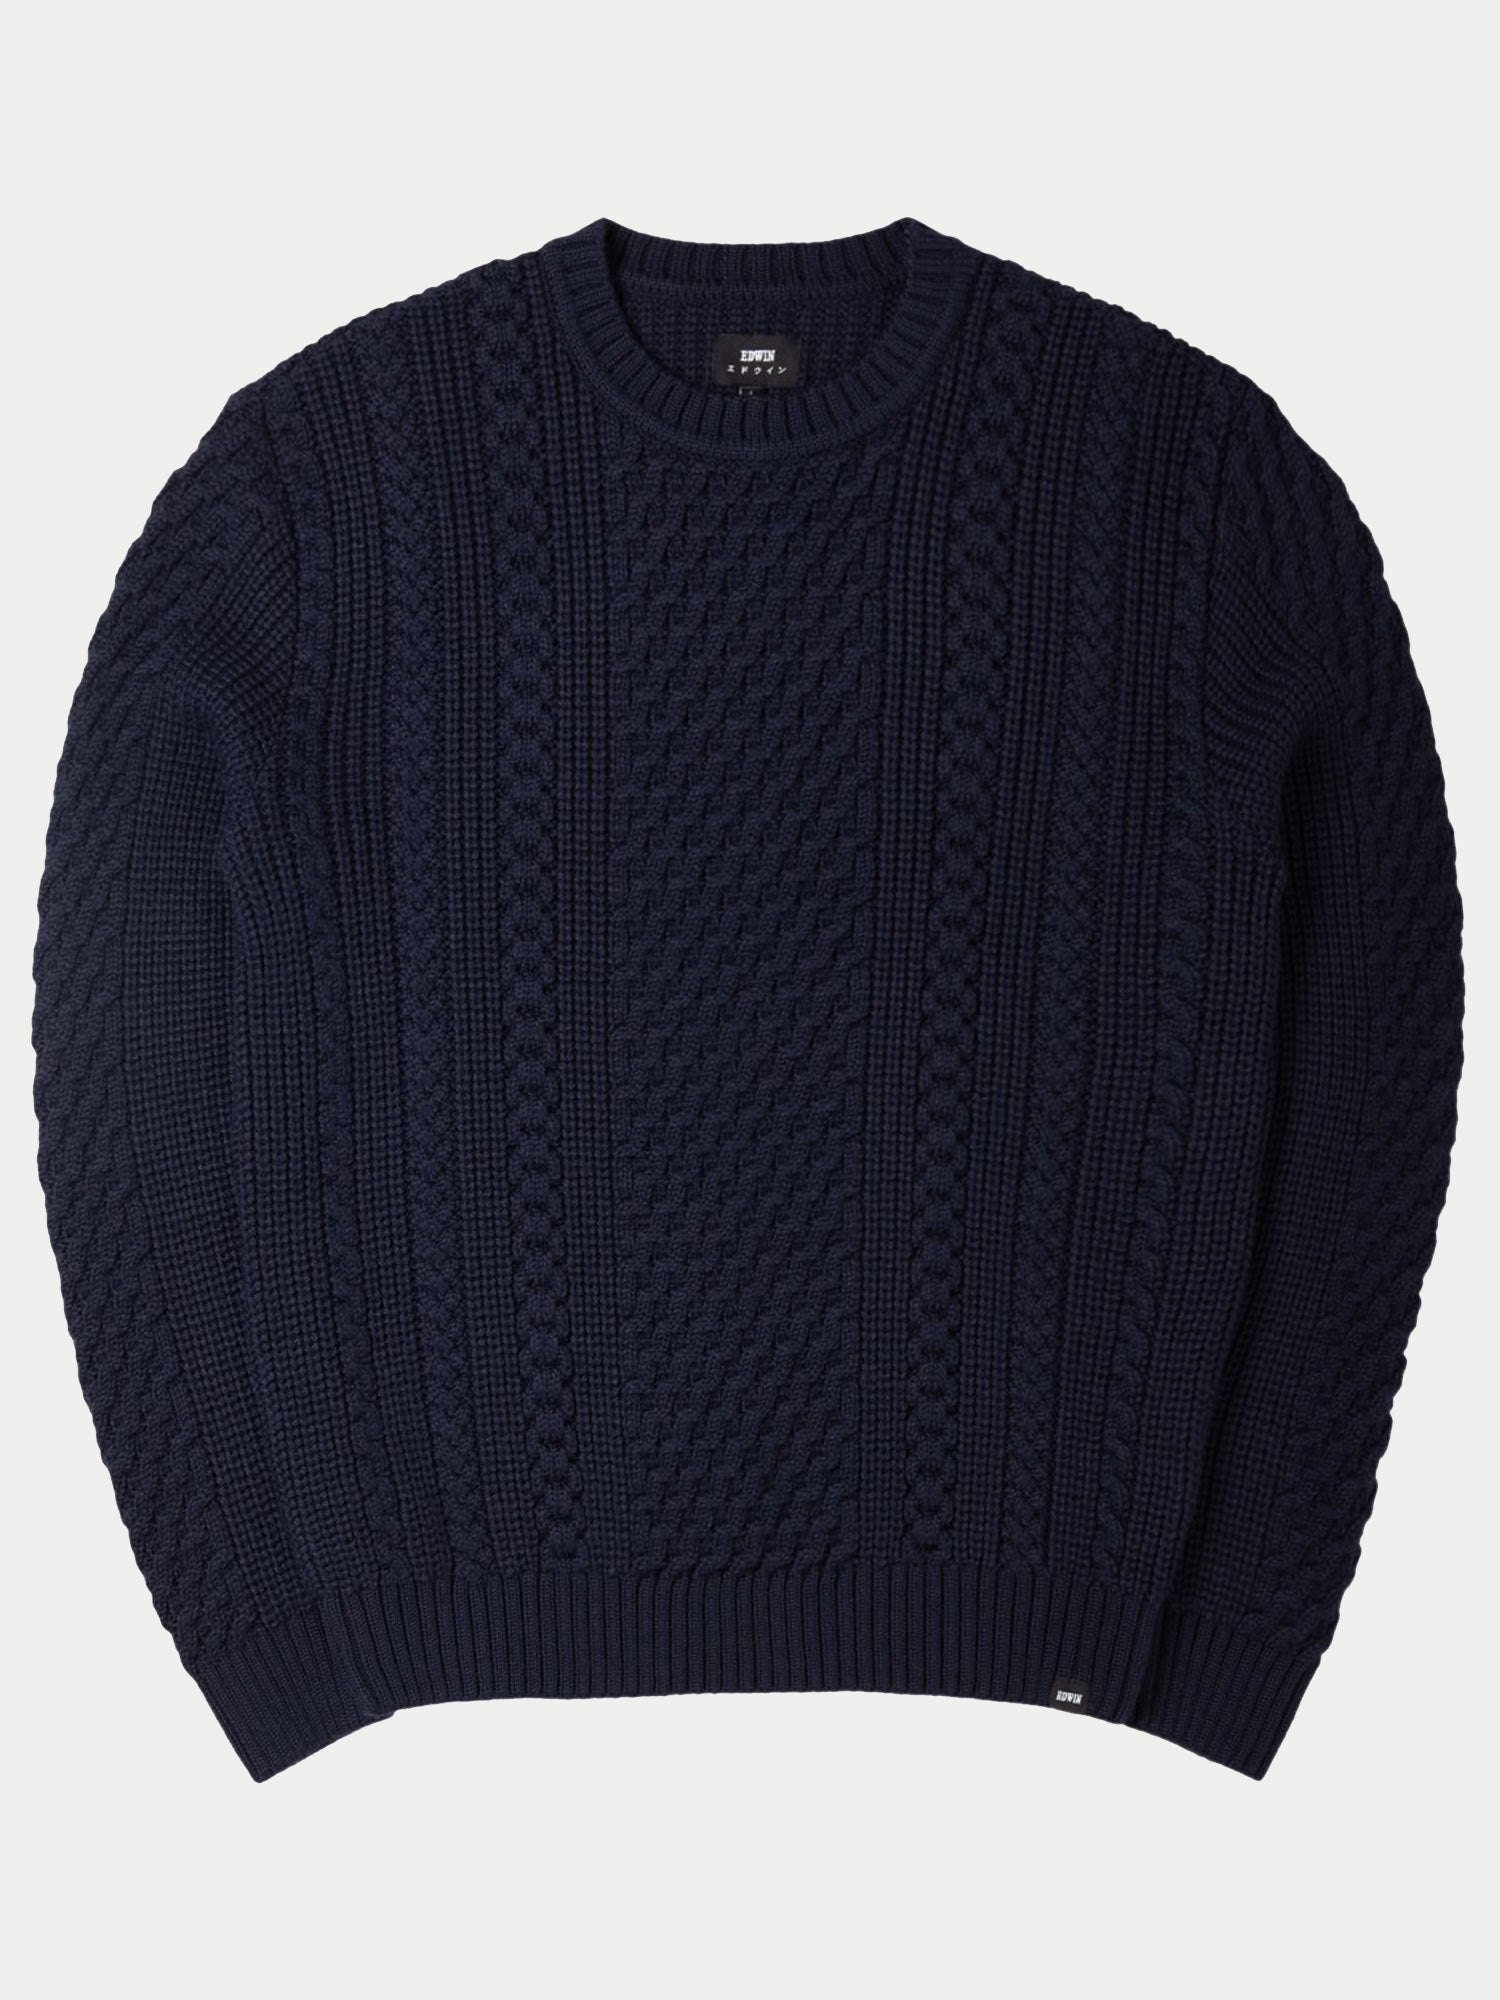 Edwin United Sweatshirt (Navy)